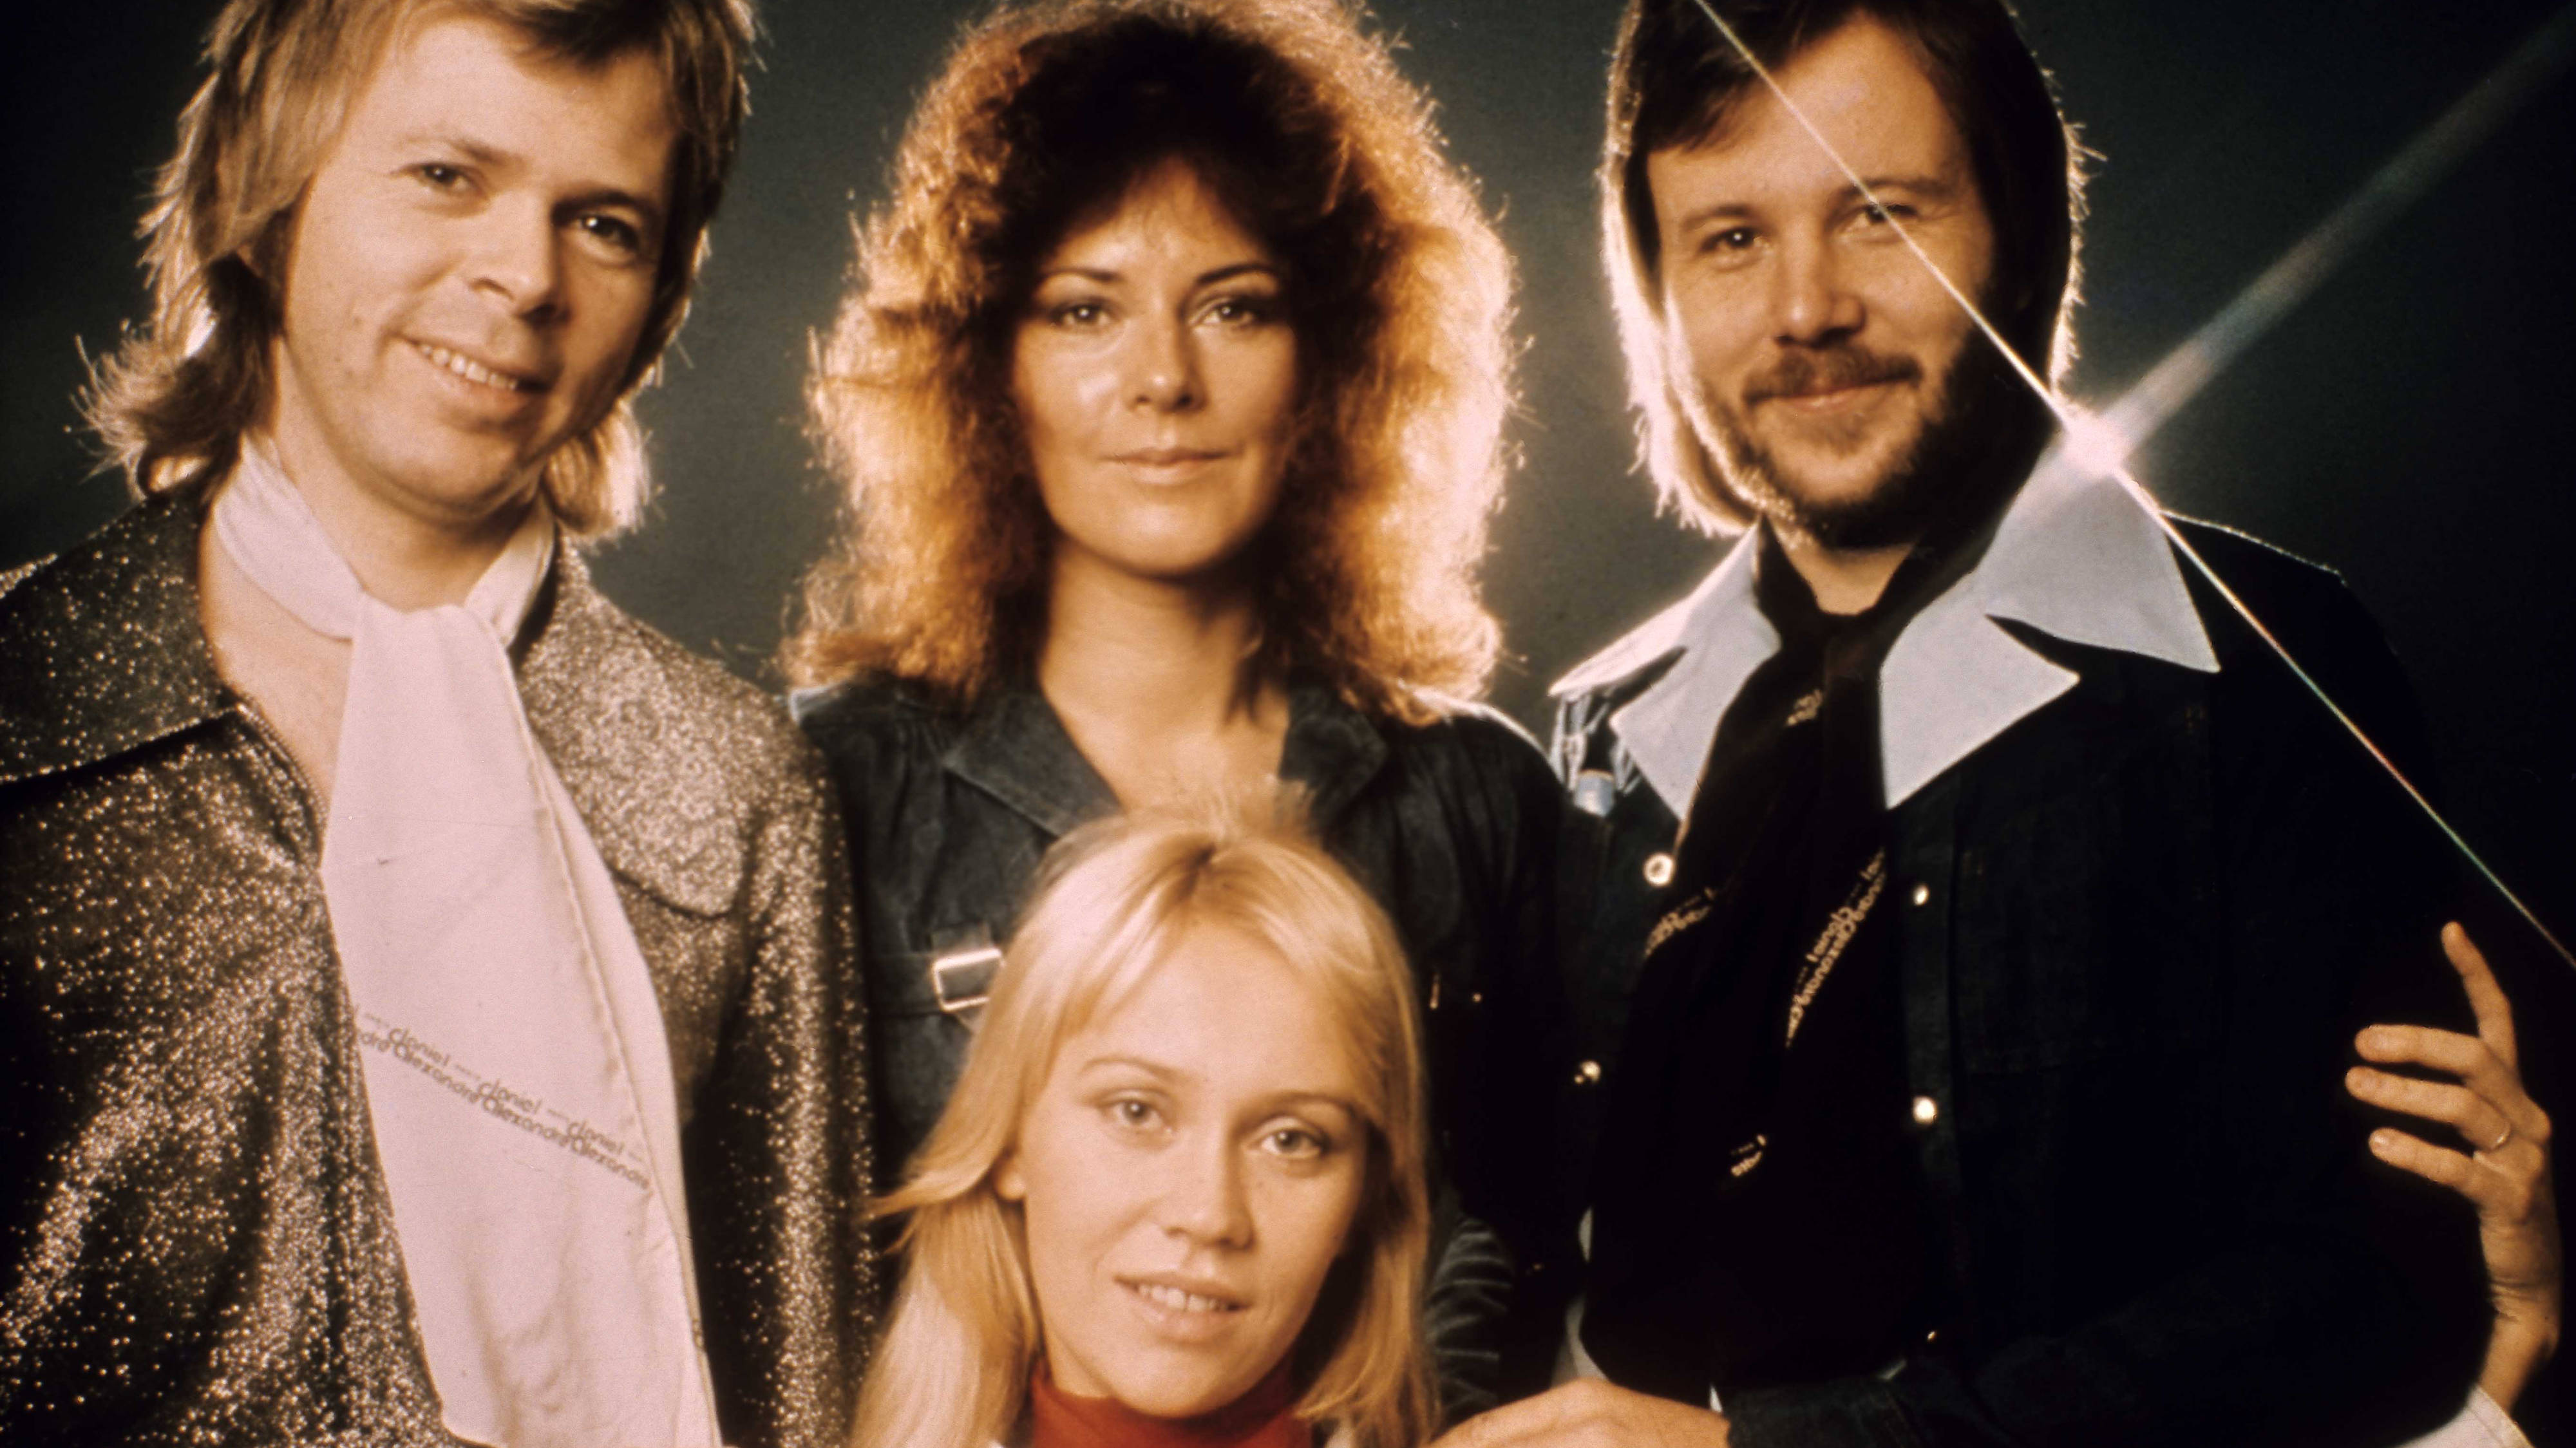 Most popular abba songs